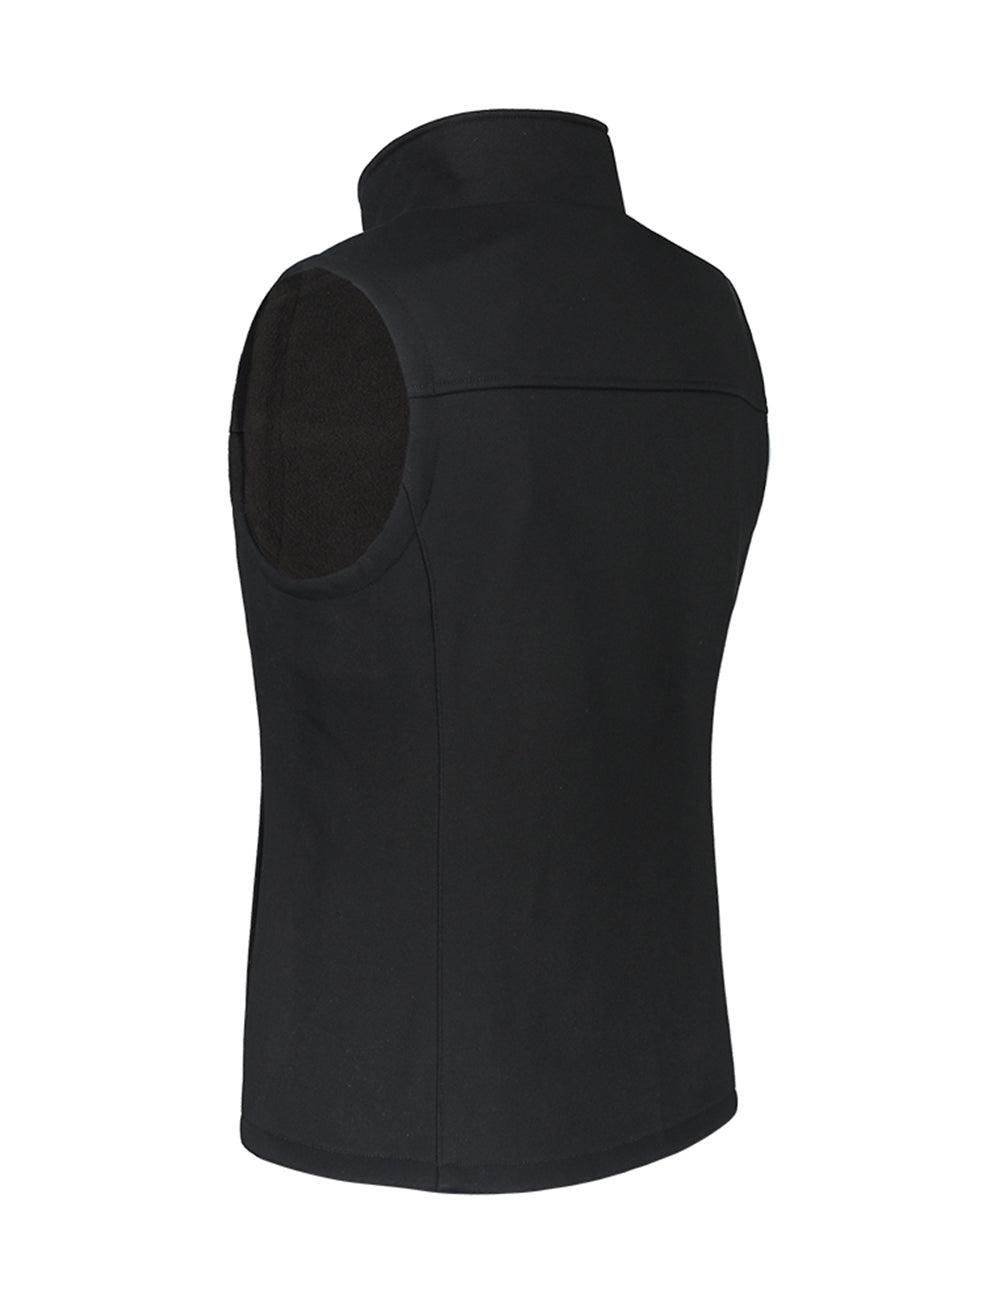 Women's Heated Fleece Vest